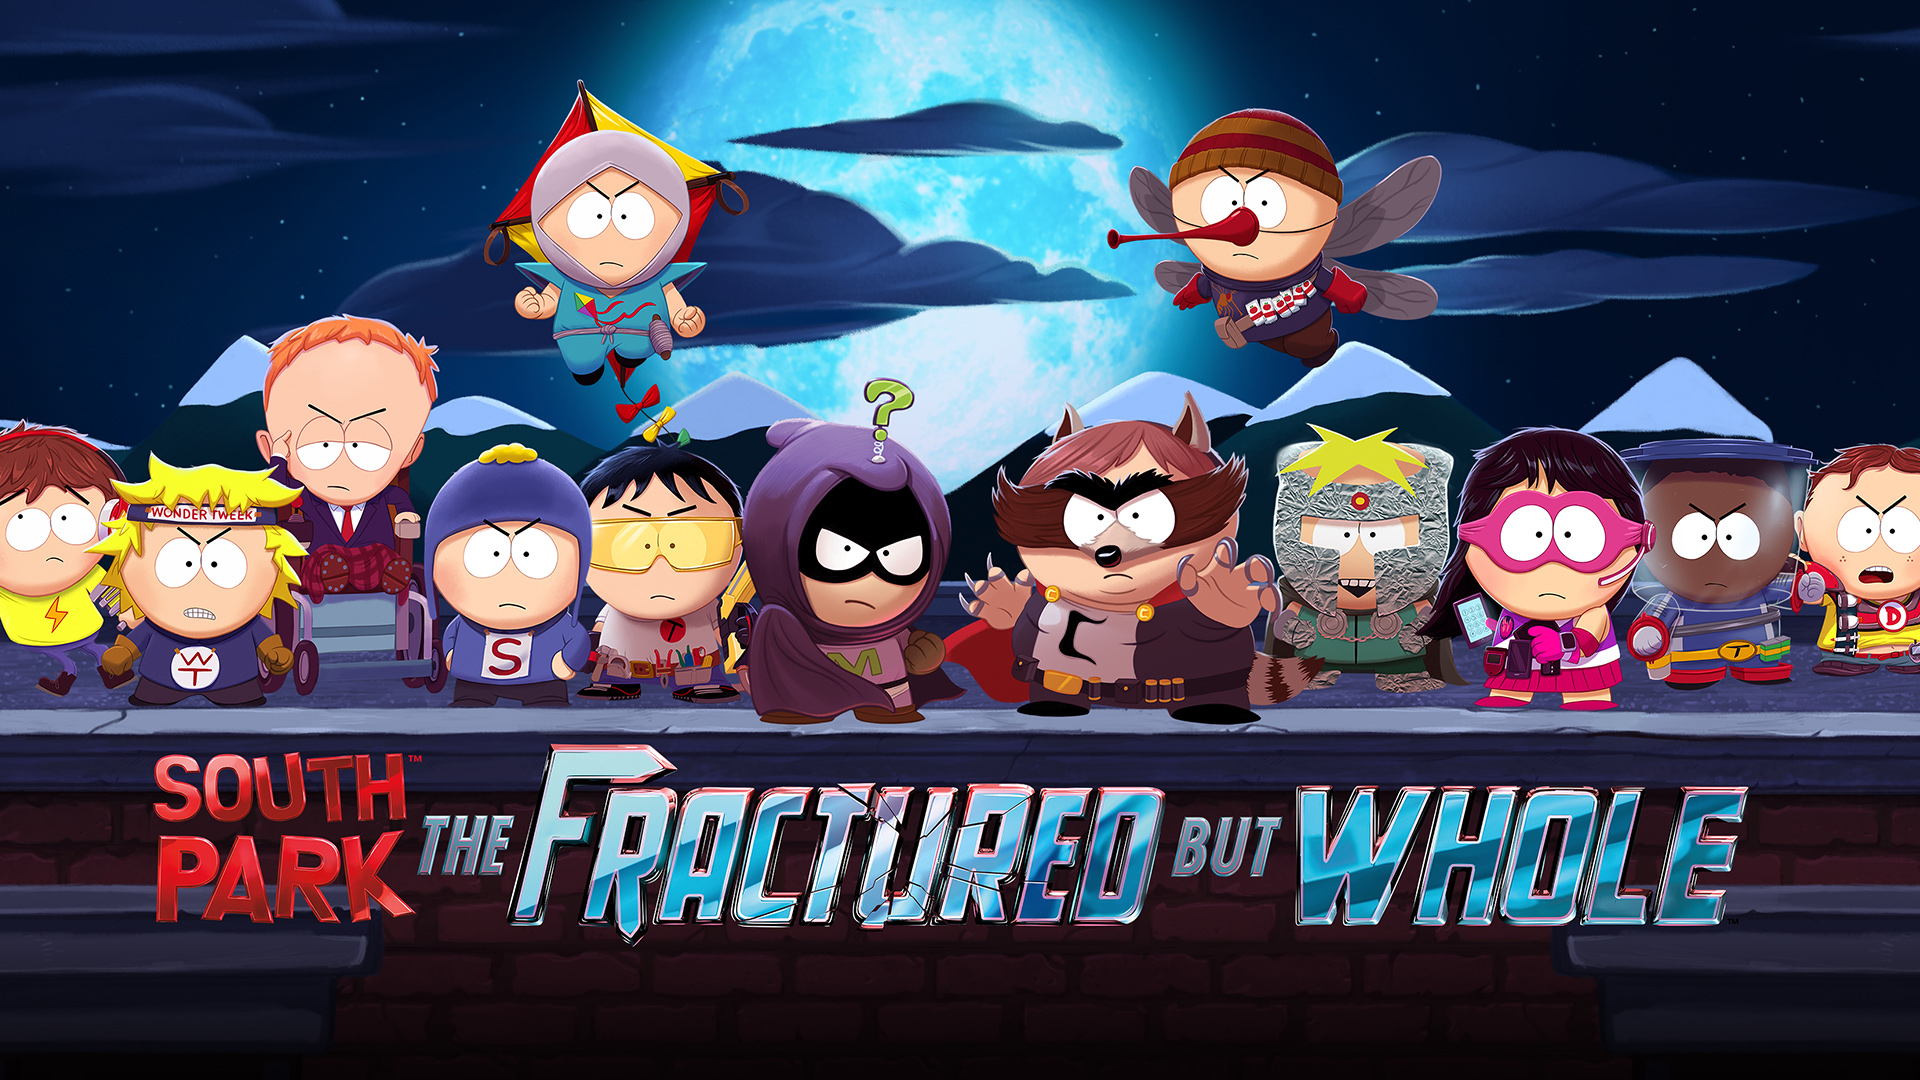 South Park The Fractured But Whole HD Wallpaper 3   1920 X 1080 1920x1080